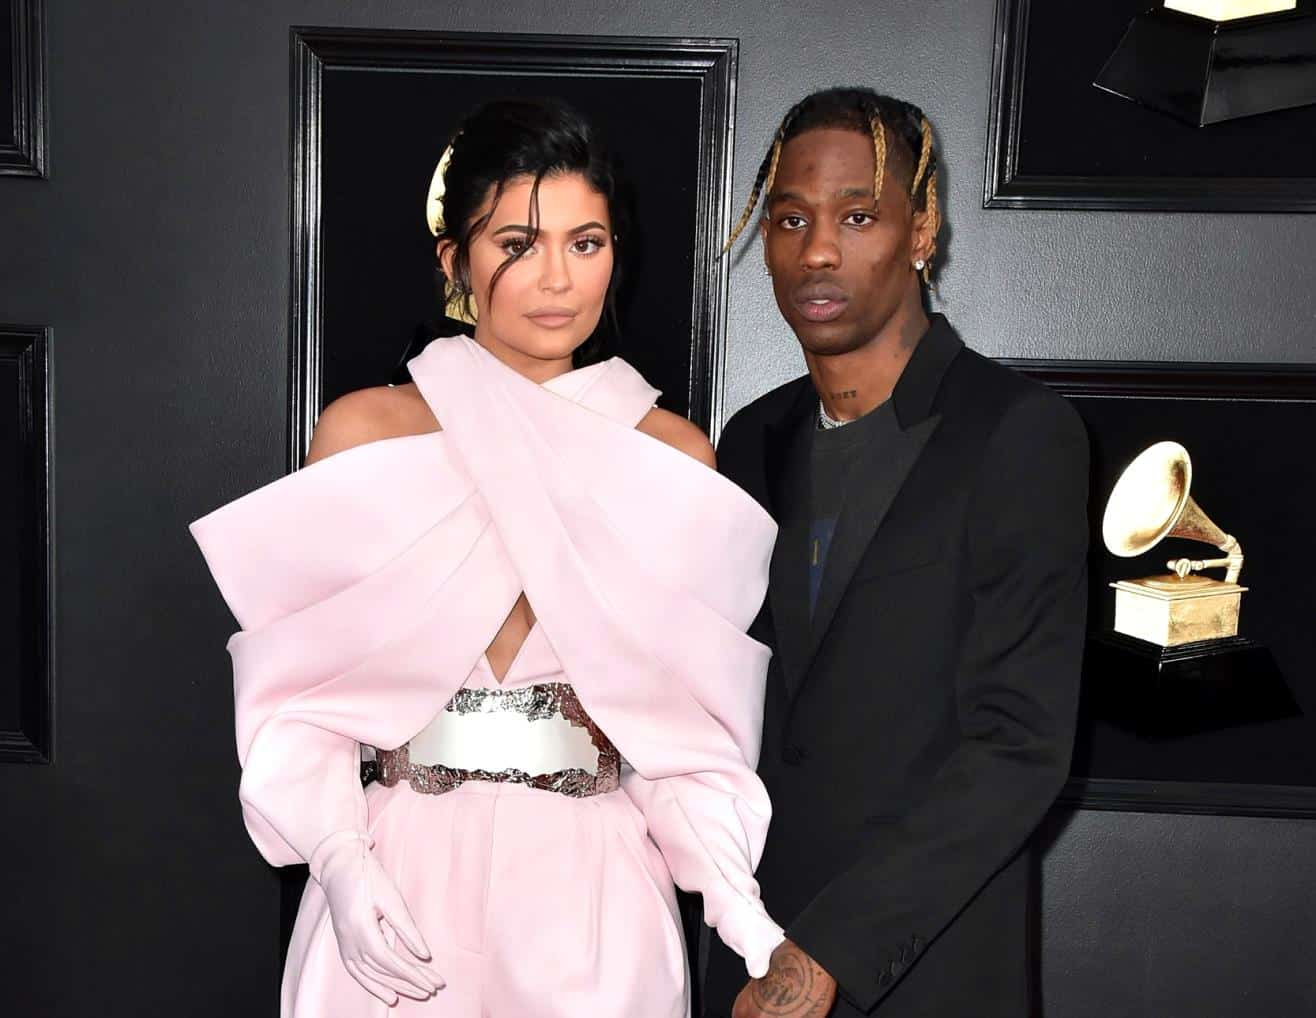 KUWTK's Kylie Jenner Accuses Boyfriend Travis Scott of Cheating on Her